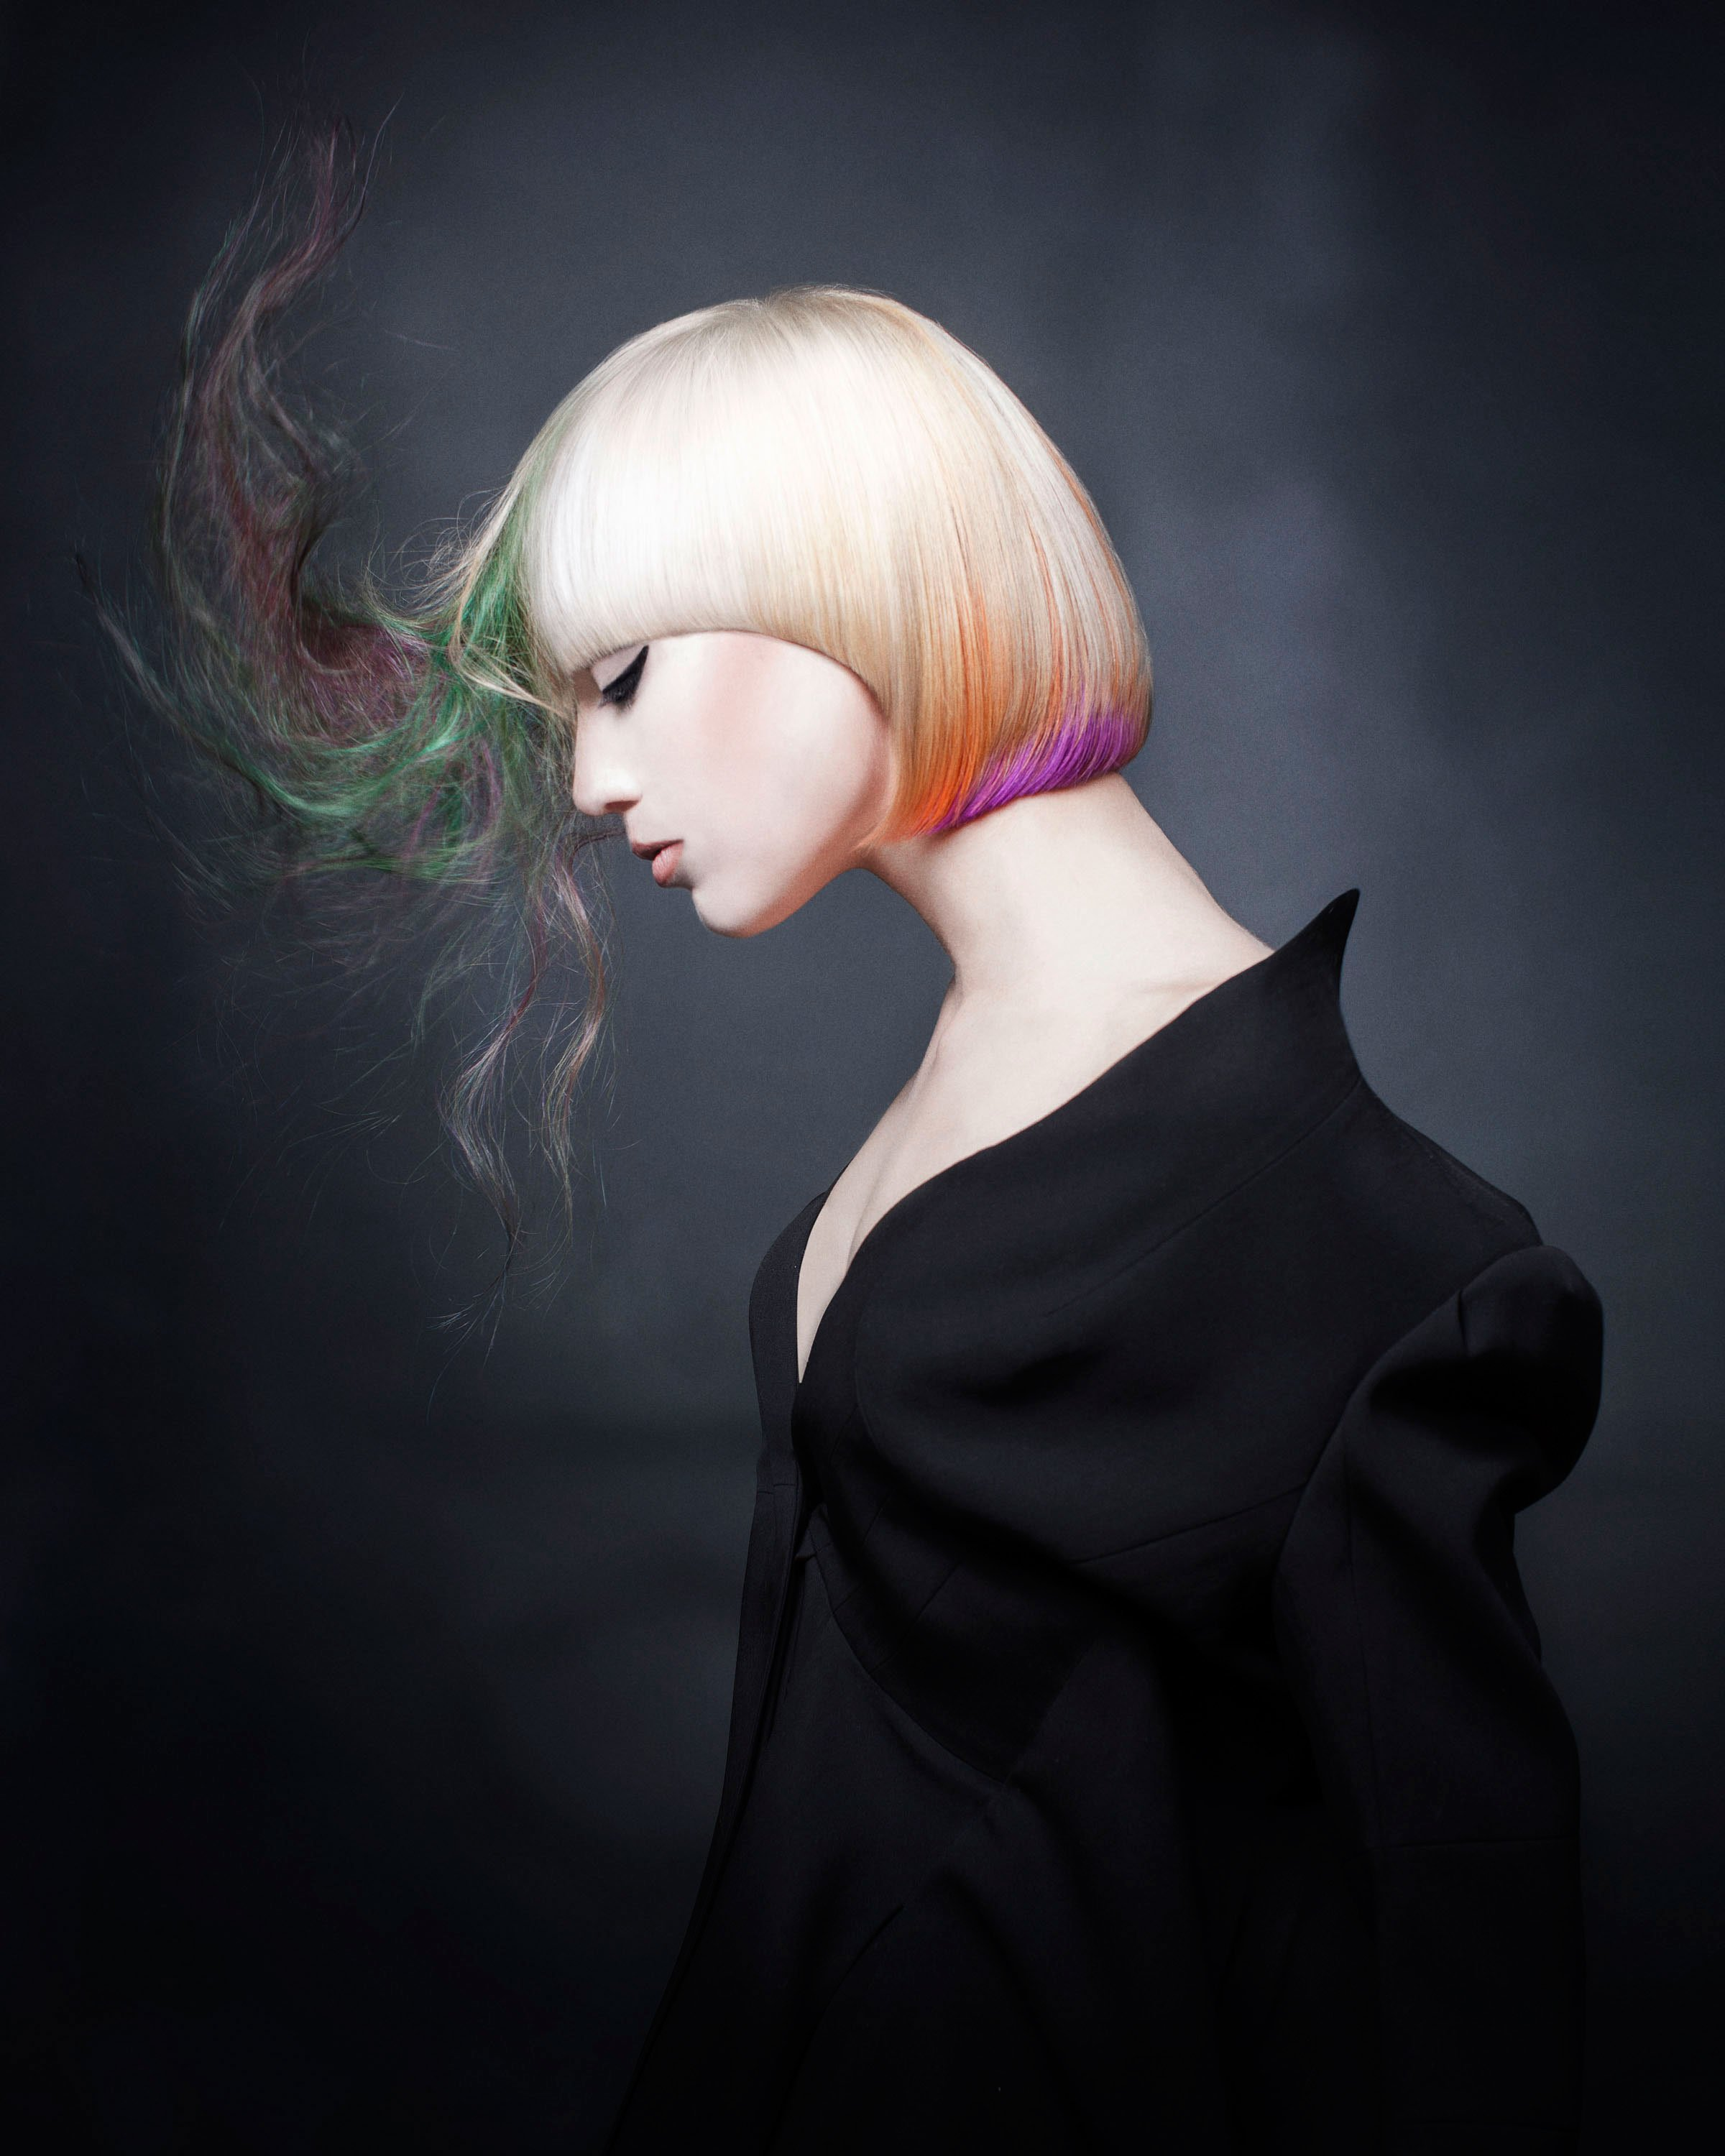 BREAKING NEWS! The 2016 U.S. Gold Finalists of Goldwell's Color Zoom Challenge